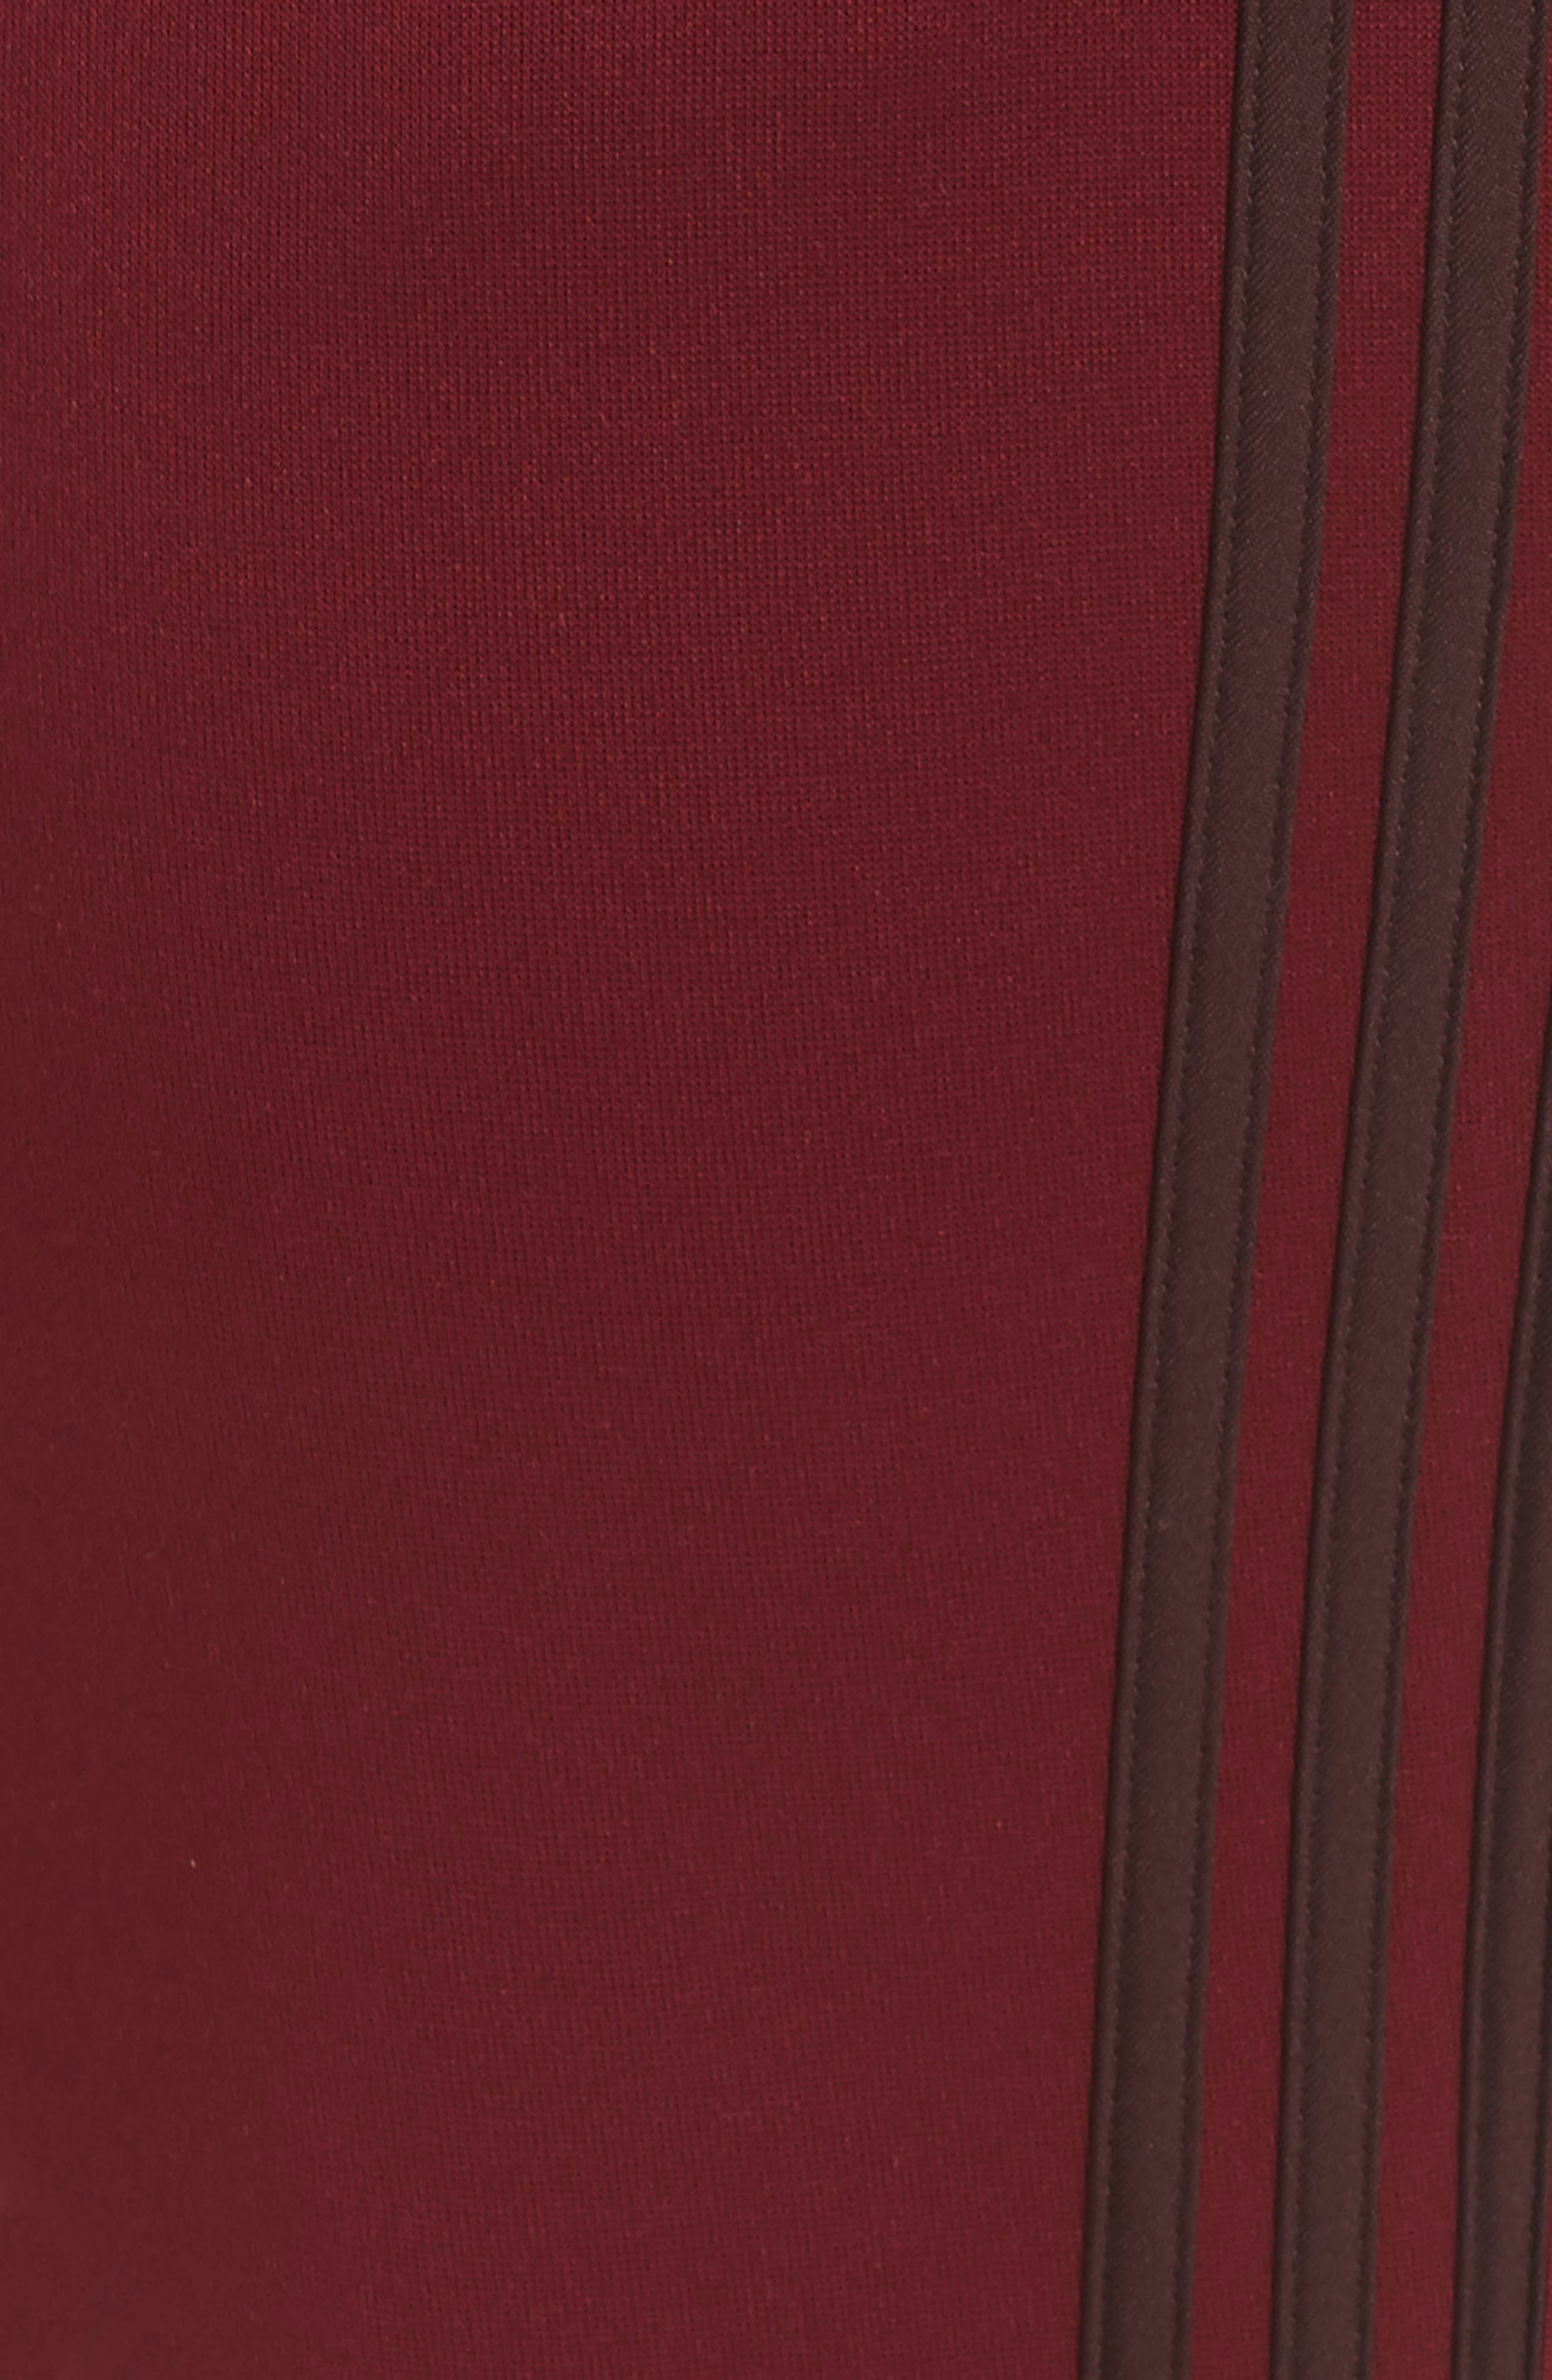 Tricot Snap Pants,                             Alternate thumbnail 11, color,                             NOBLE MAROON/ NIGHT RED